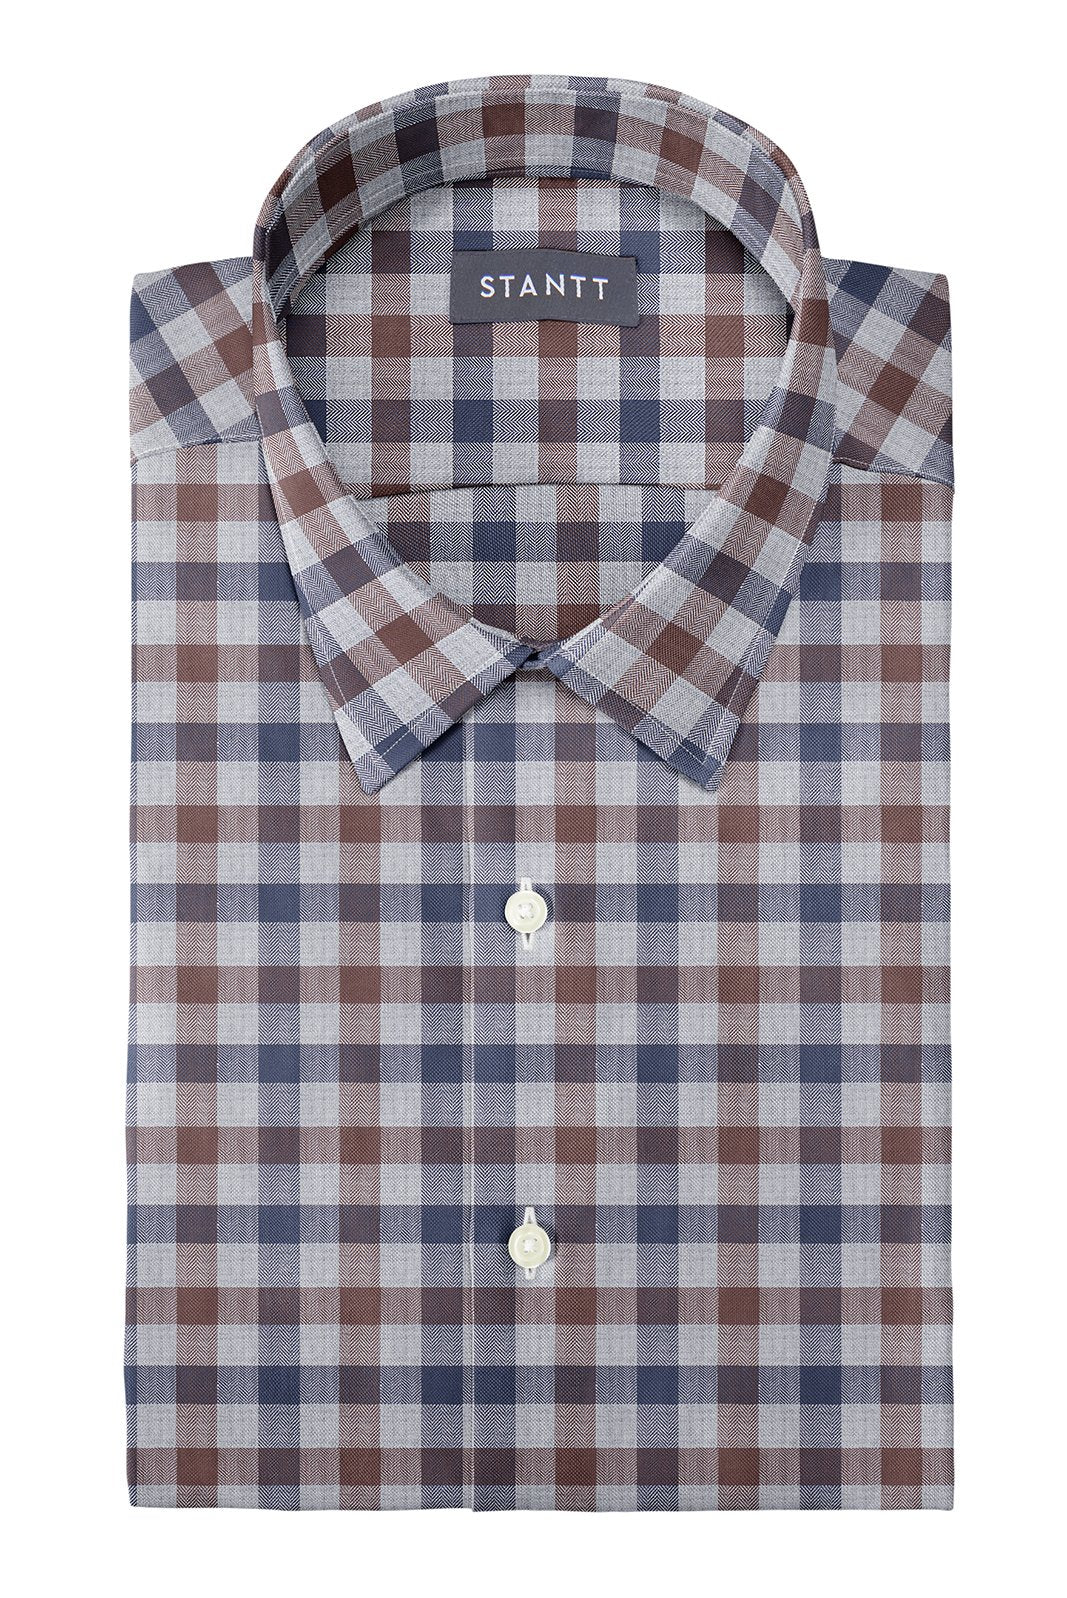 Brown Herringbone Gingham: Semi-Spread Collar, Barrel Cuff